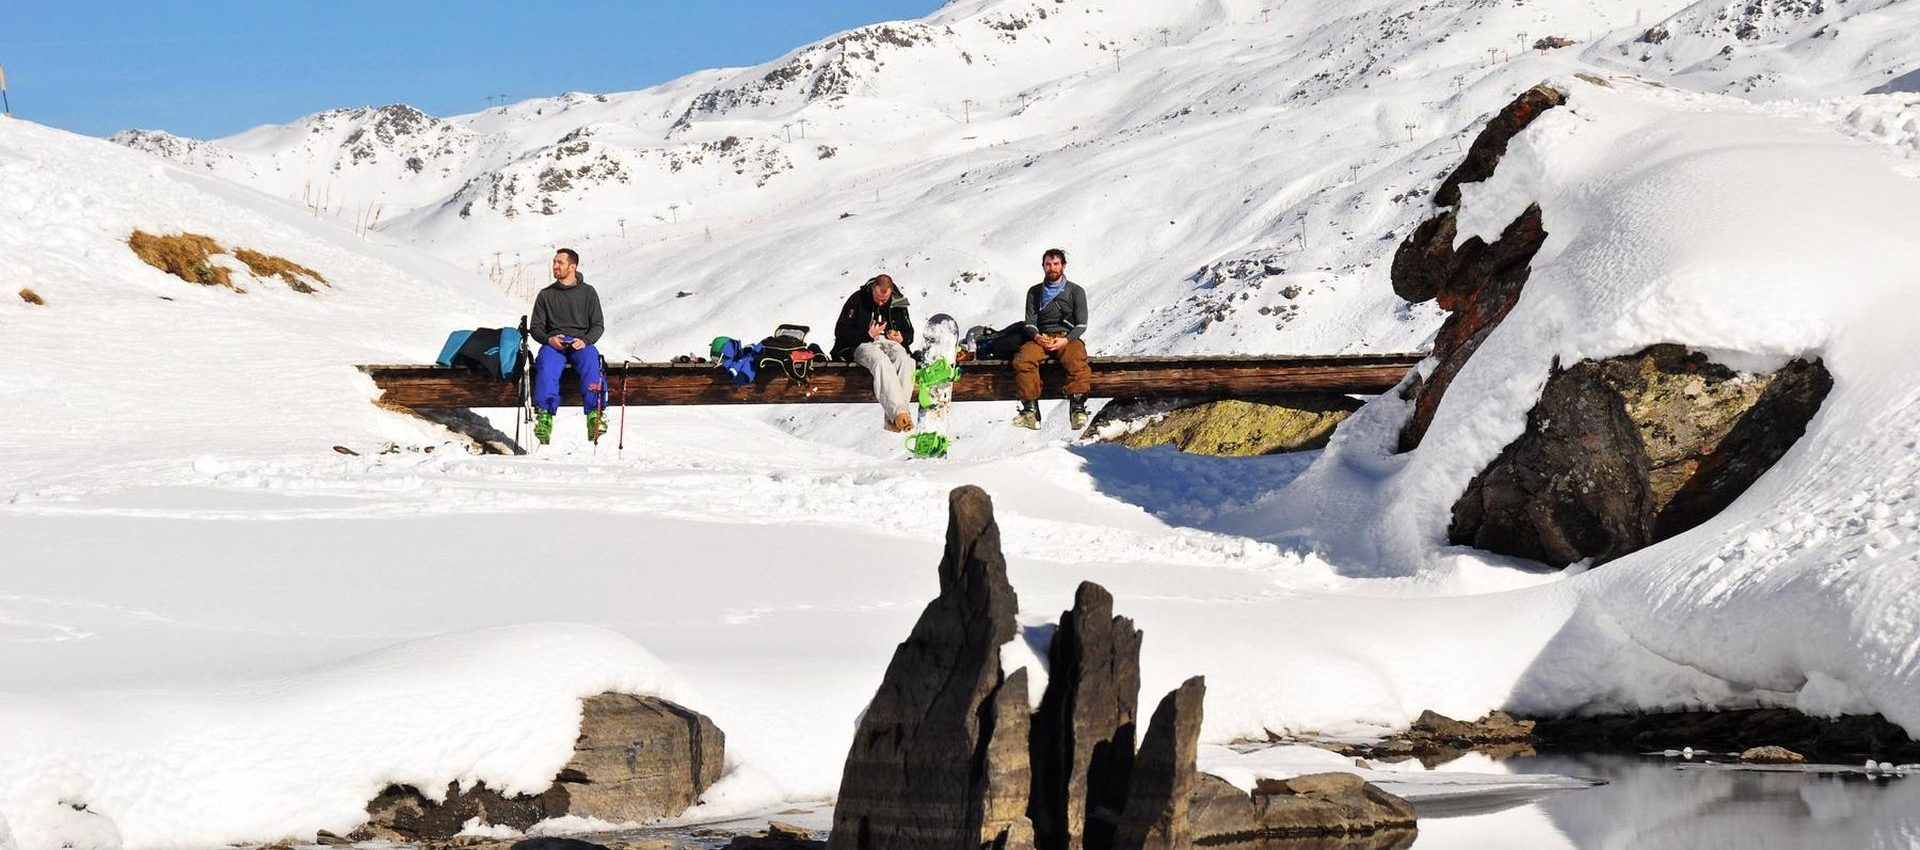 Usually we don't waste time in restaurants during the day, better to take a small lunch break in the stunning backcountry